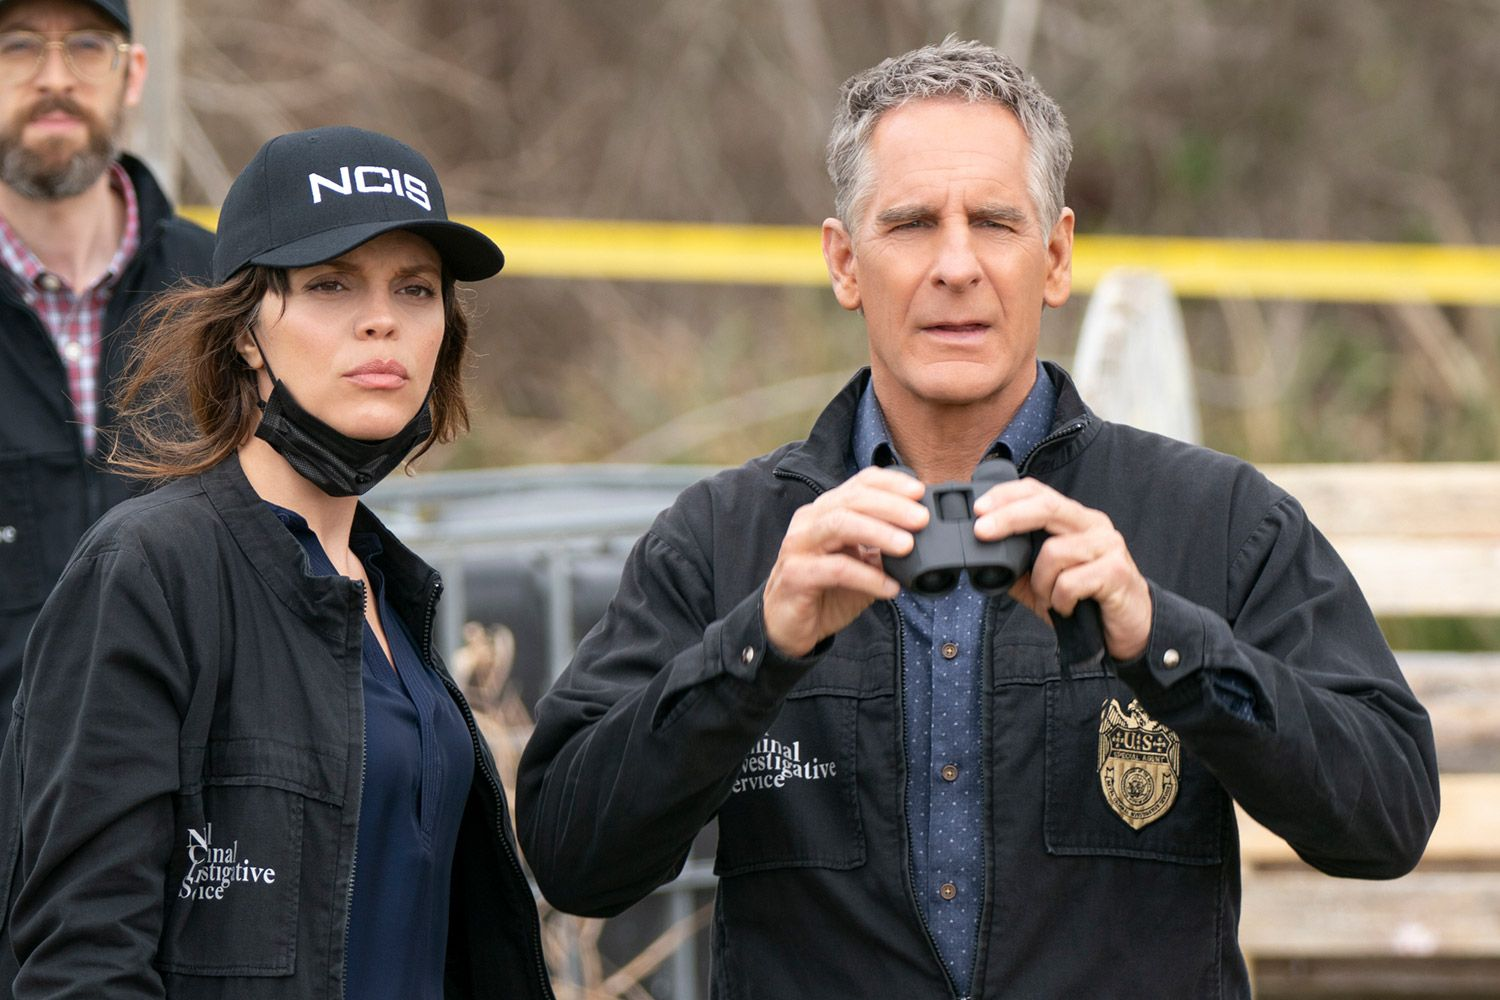 Image result for ncis new orleans